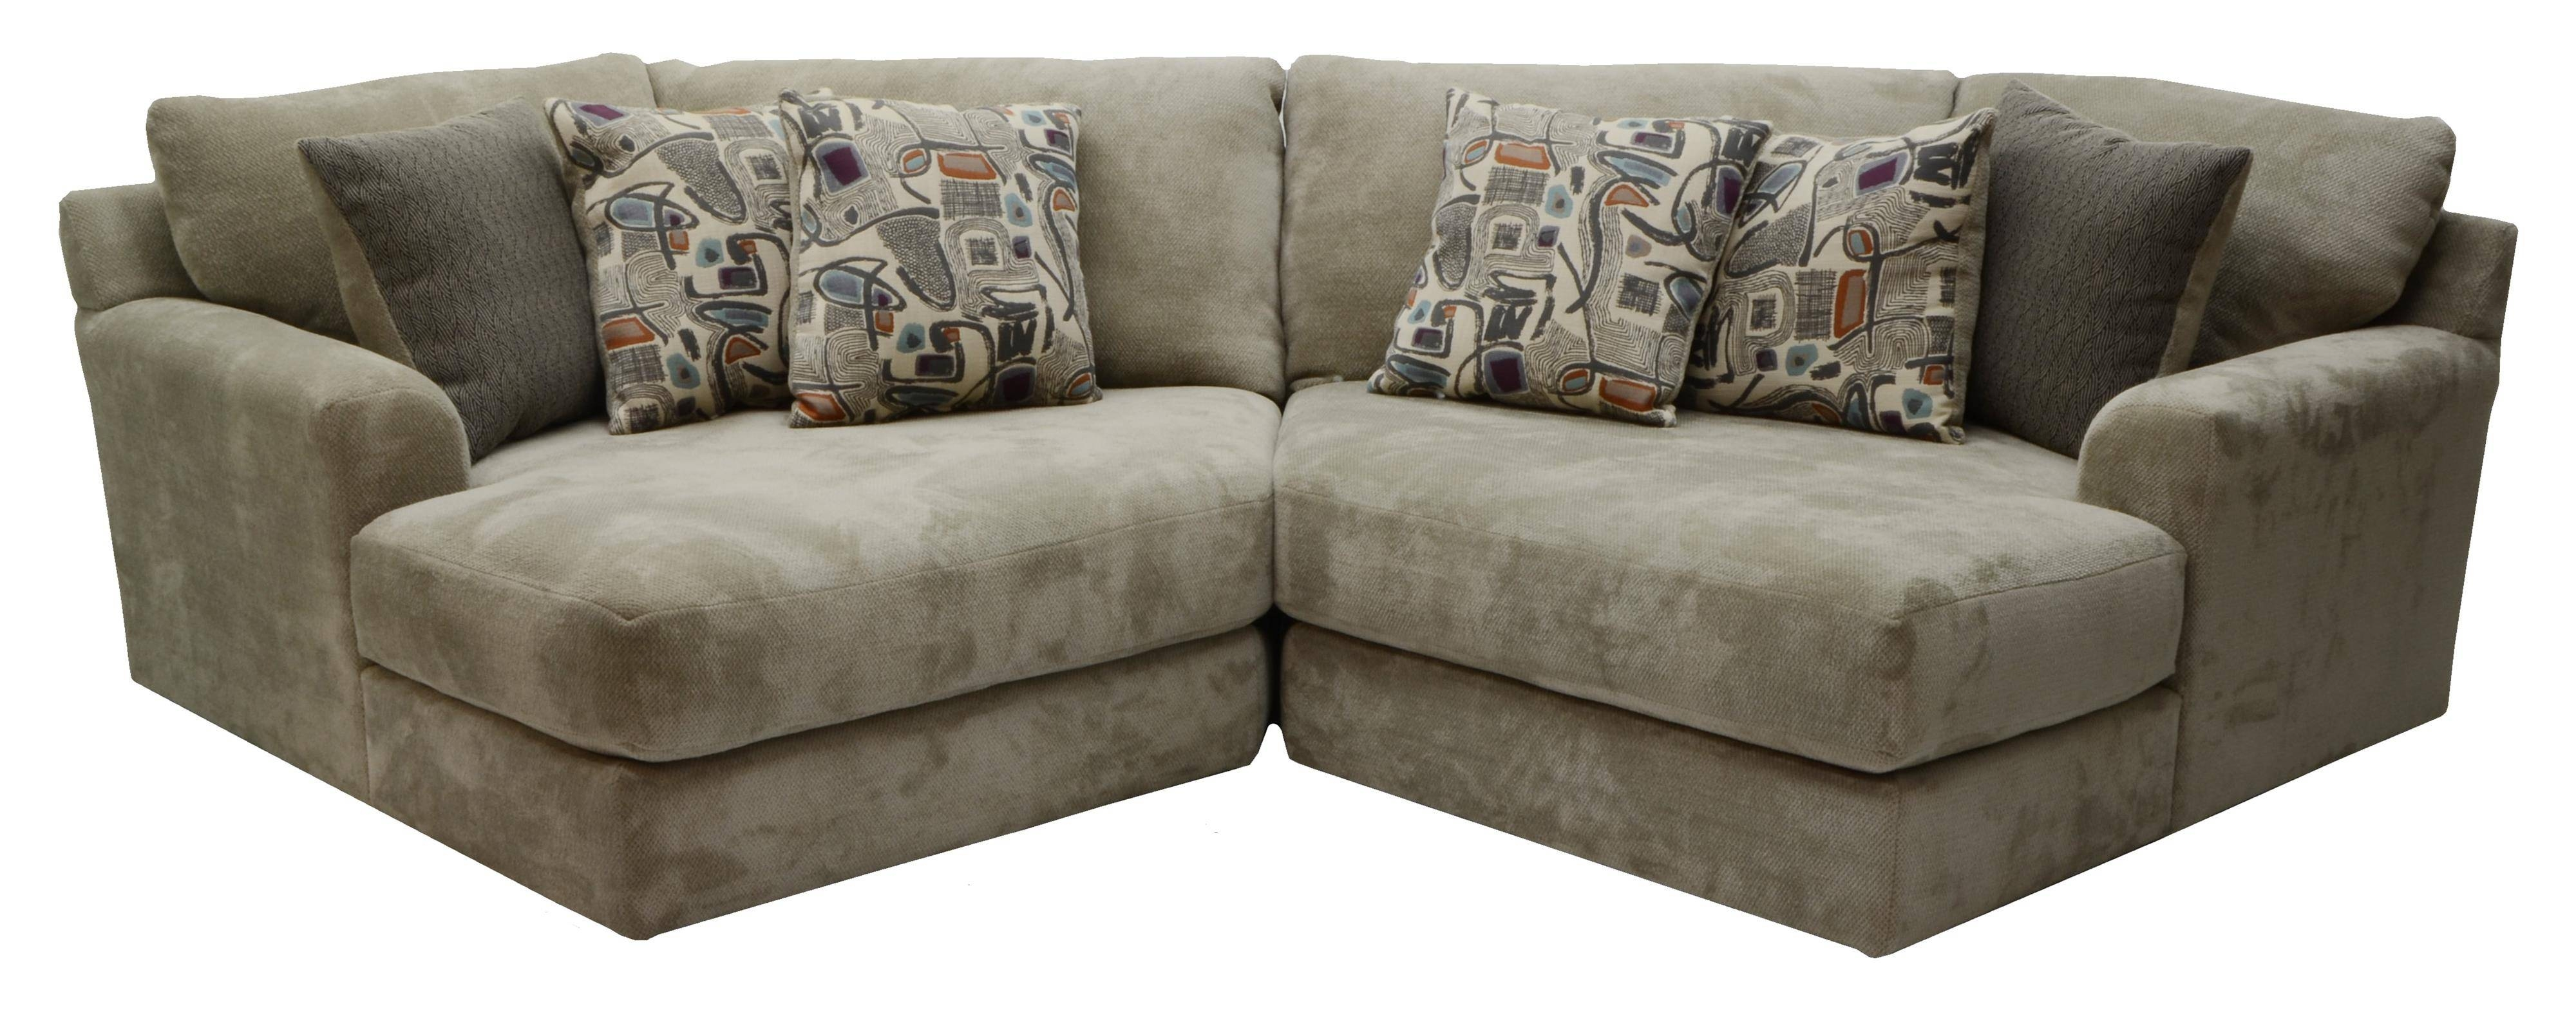 Two Seat Sectionaljackson Furniture | Wolf And Gardiner Wolf with 2 Seat Sectional Sofas (Image 29 of 30)